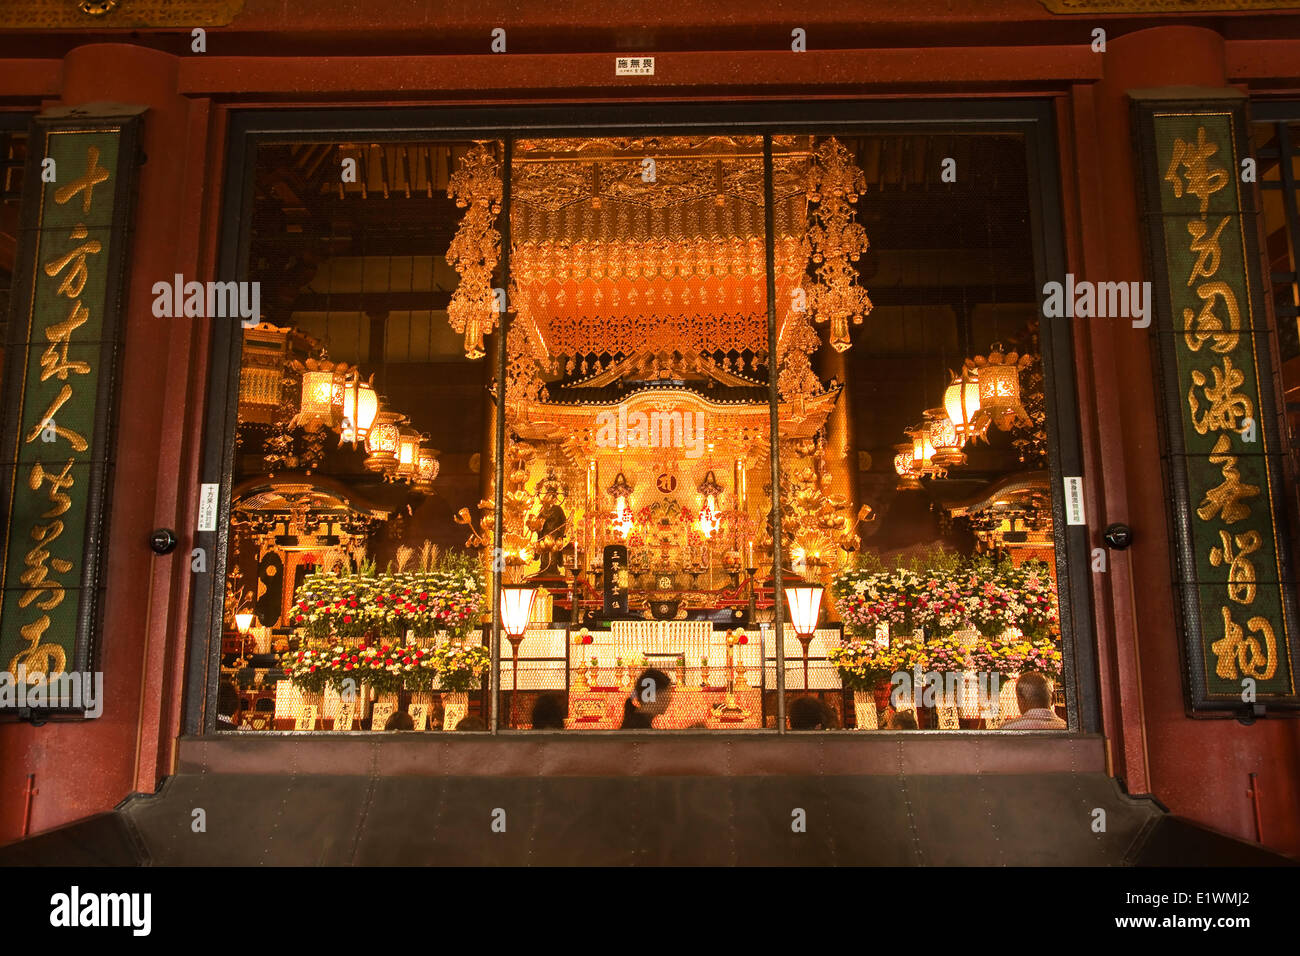 Sensoji Temple's origins date back to 645, Tokyo, Japan - Stock Image